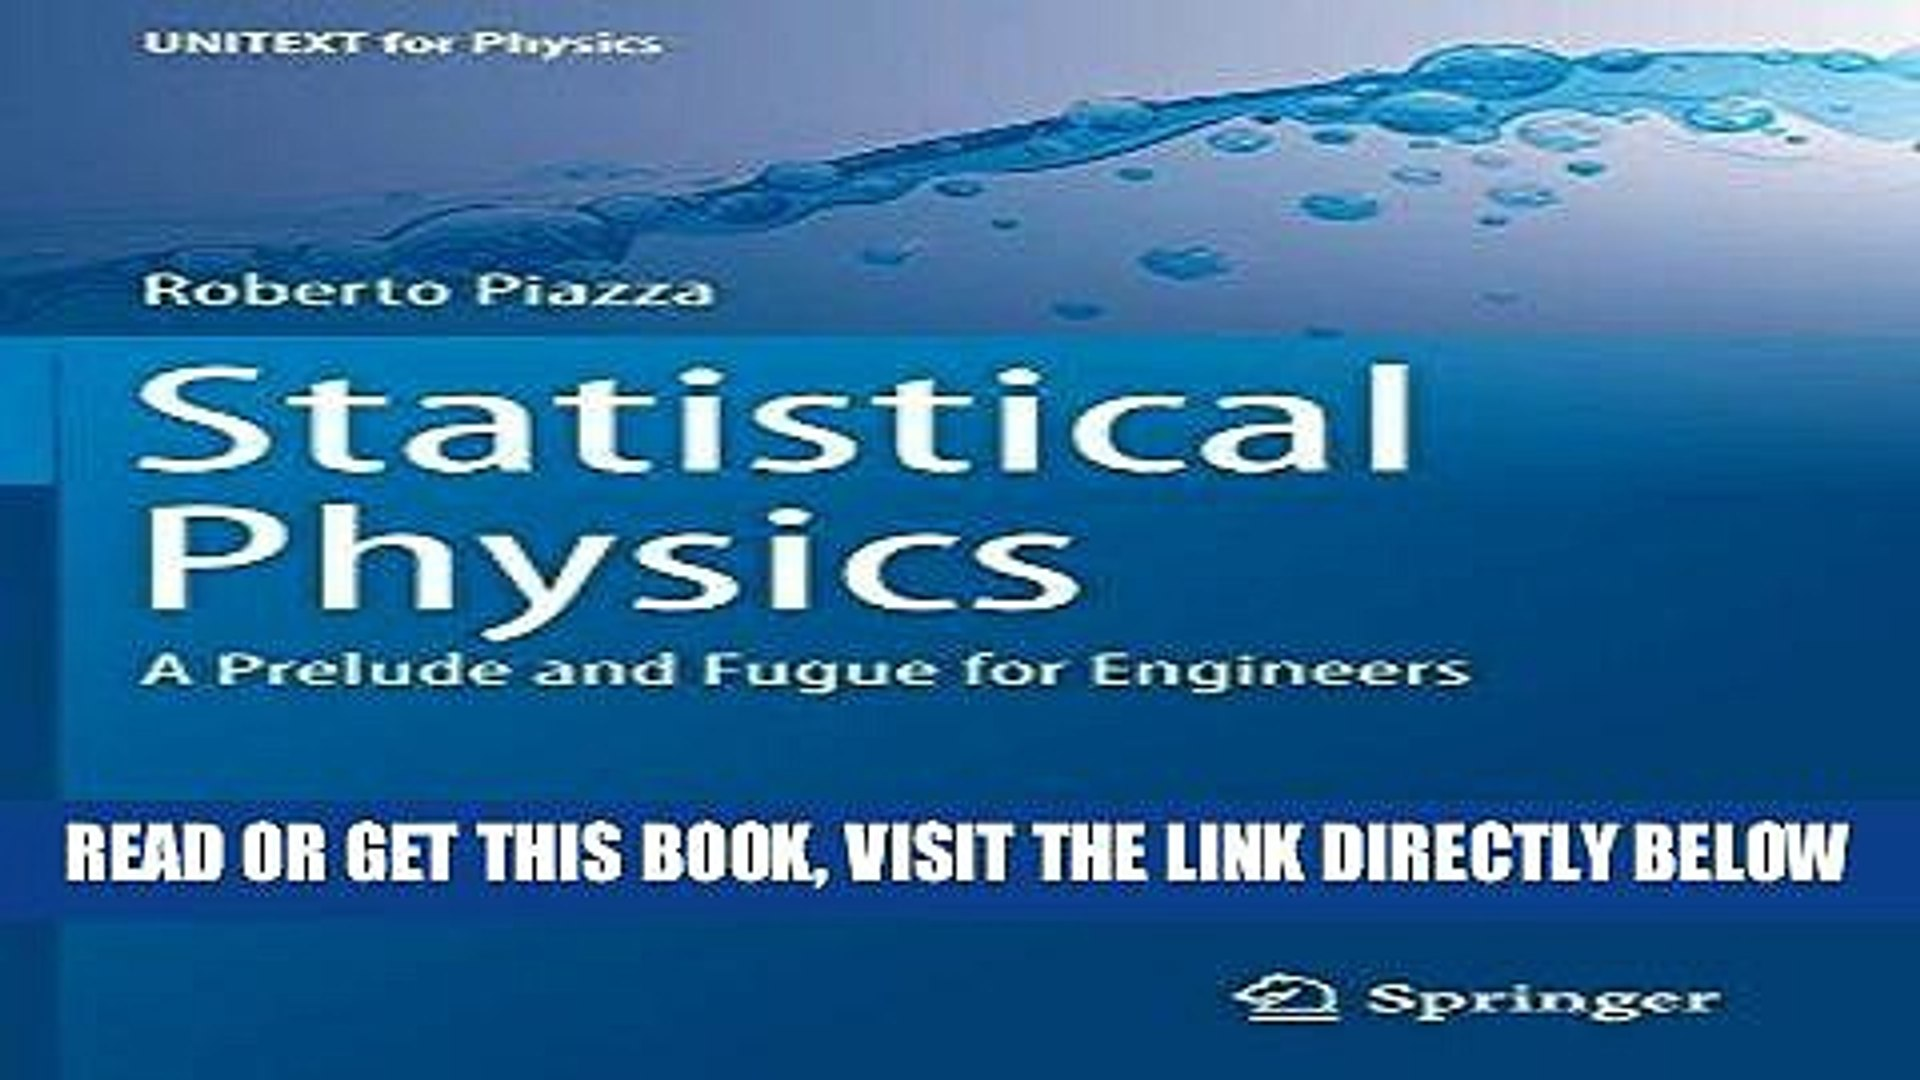 [READ] EBOOK Statistical Physics: A Prelude and Fugue for Engineers  (UNITEXT for Physics) ONLINE